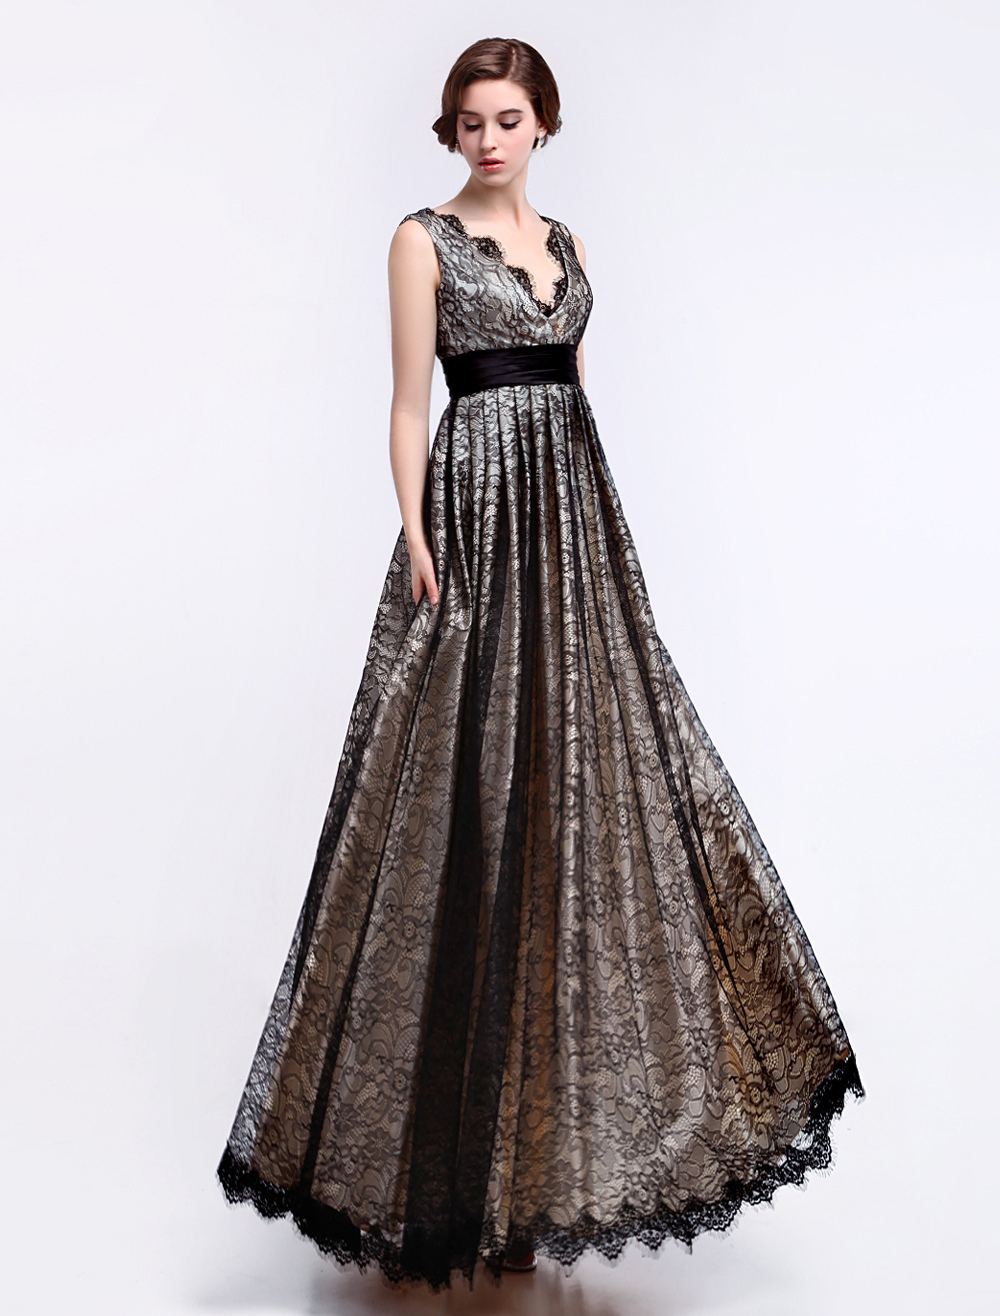 A-line V-Neck Lace Trim Glamour Fashion Dress For Mother of the Bride Milanoo